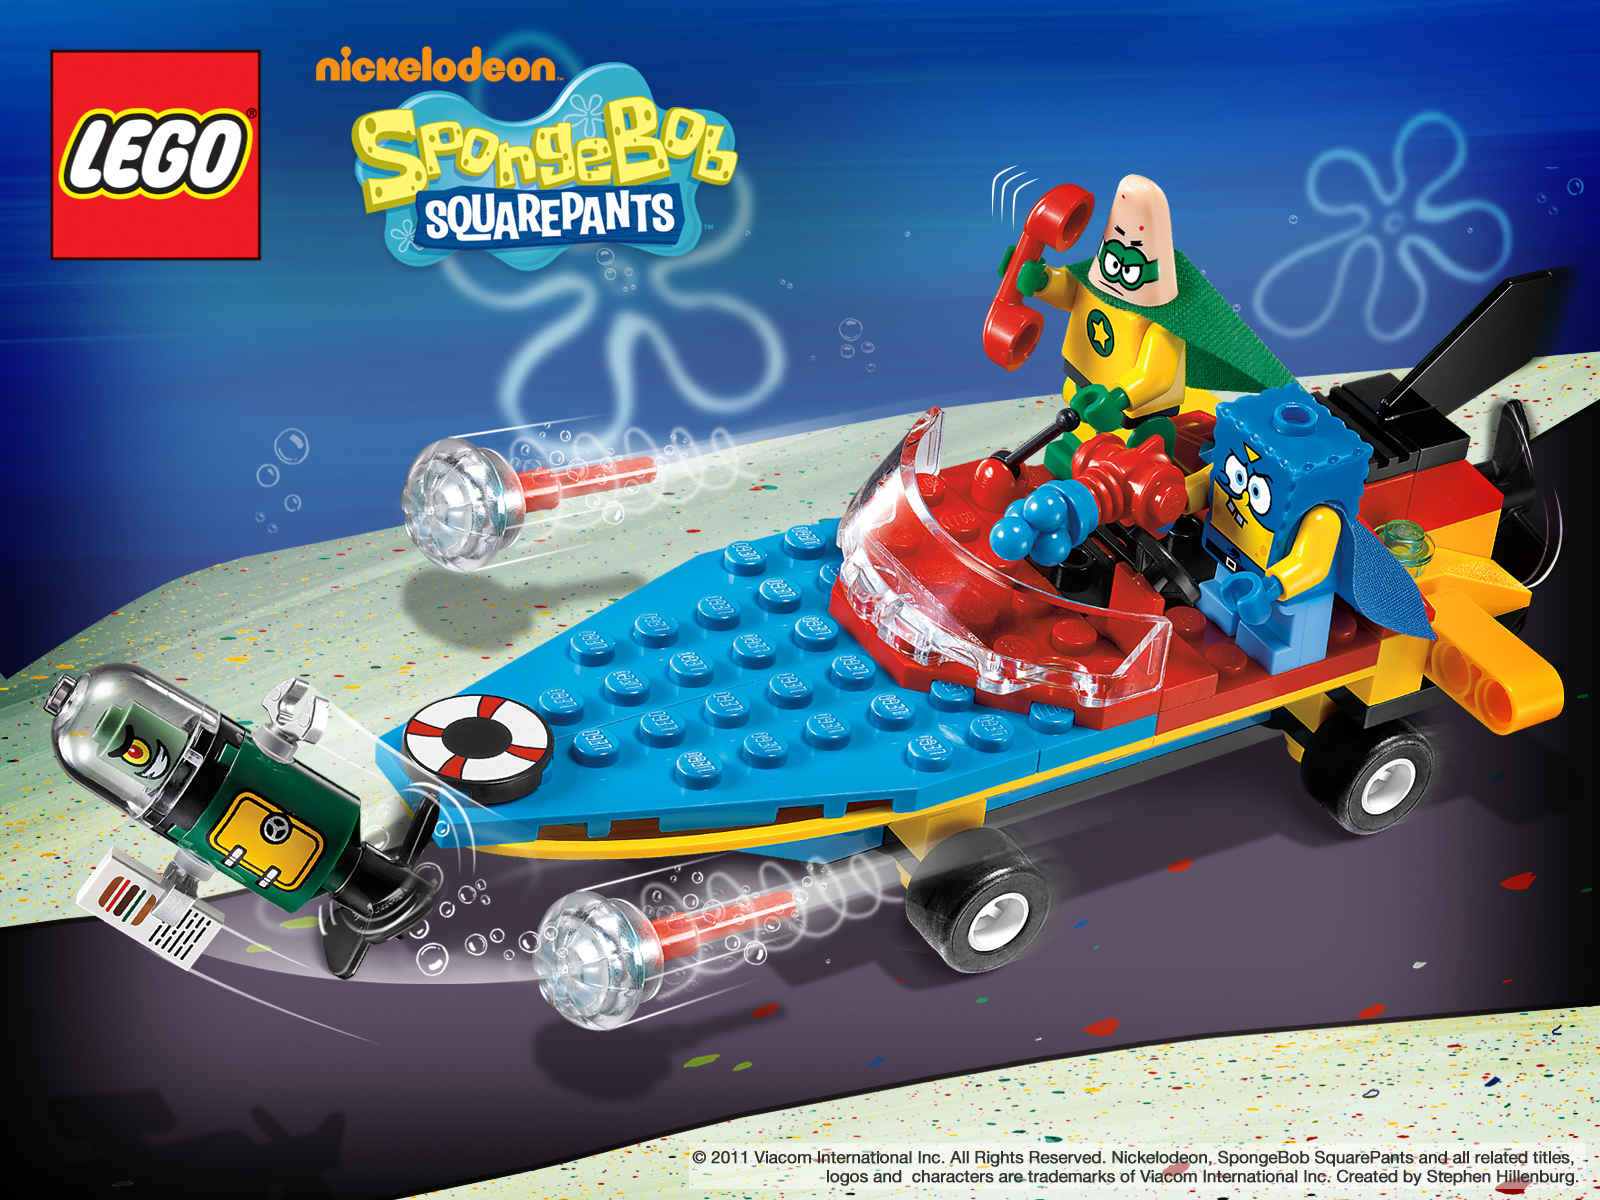 lego spongebob squarepants images spongebob 2011 products hd